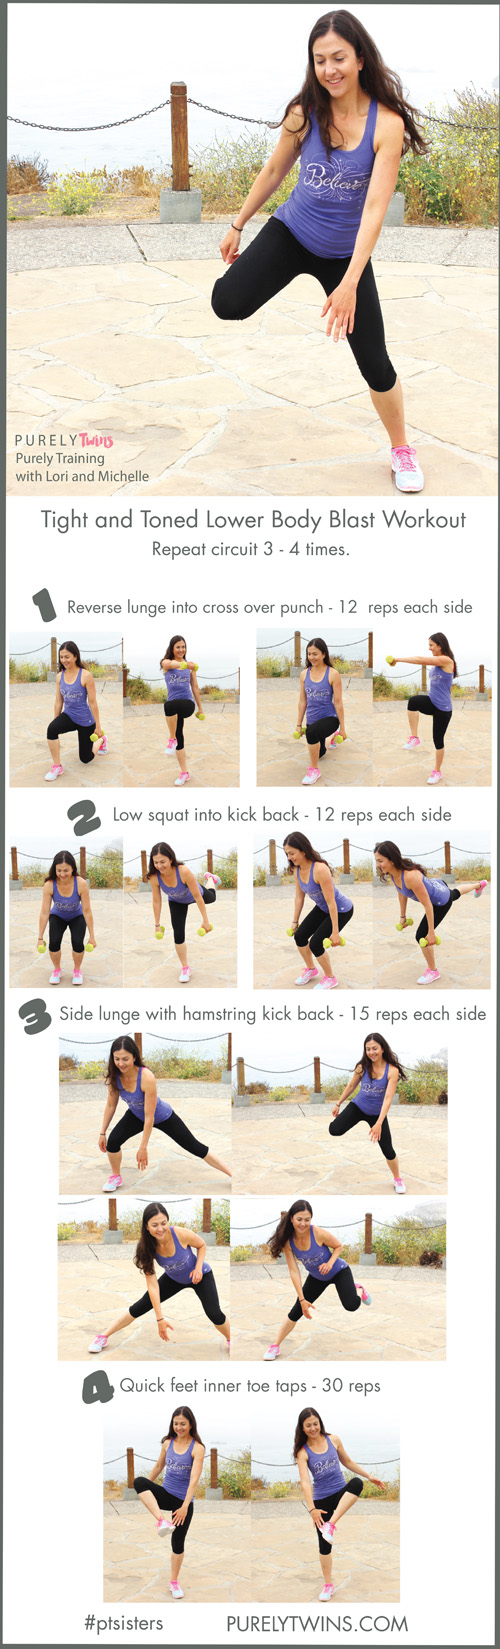 4 moves that firm up your lower body and all the exercises are fun too! Get ready ladies to tighten and tone all the beautiful muscles in this circuit workout that targets your thighs, abs, hips, hamstrings and glutes.